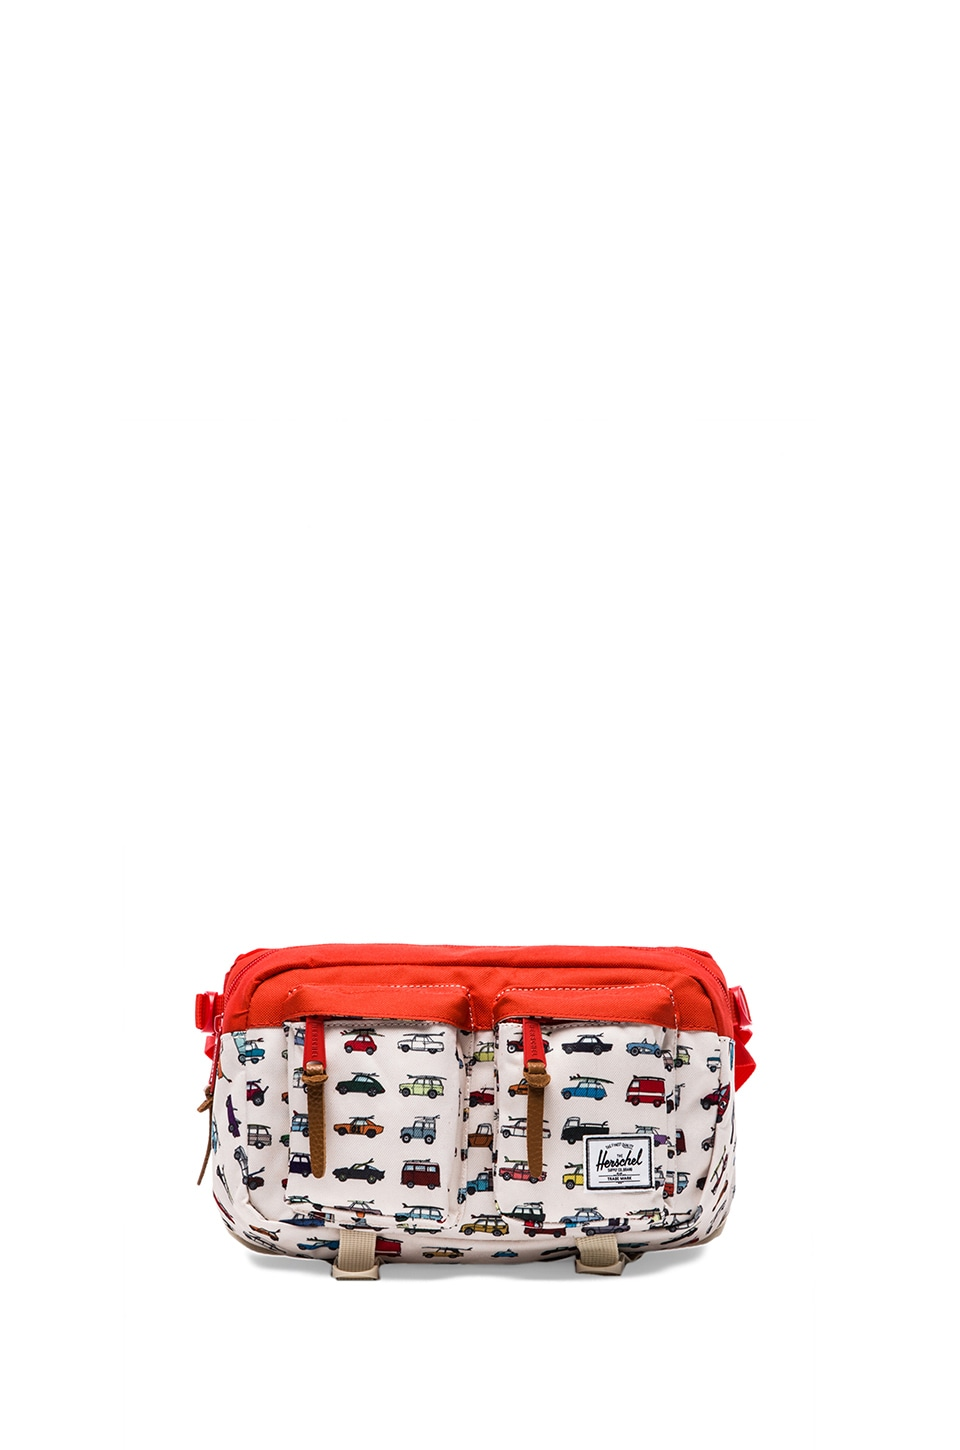 Herschel Supply Co. Rad Cars Collection Eighteen Pack in Punch & Rad Cars